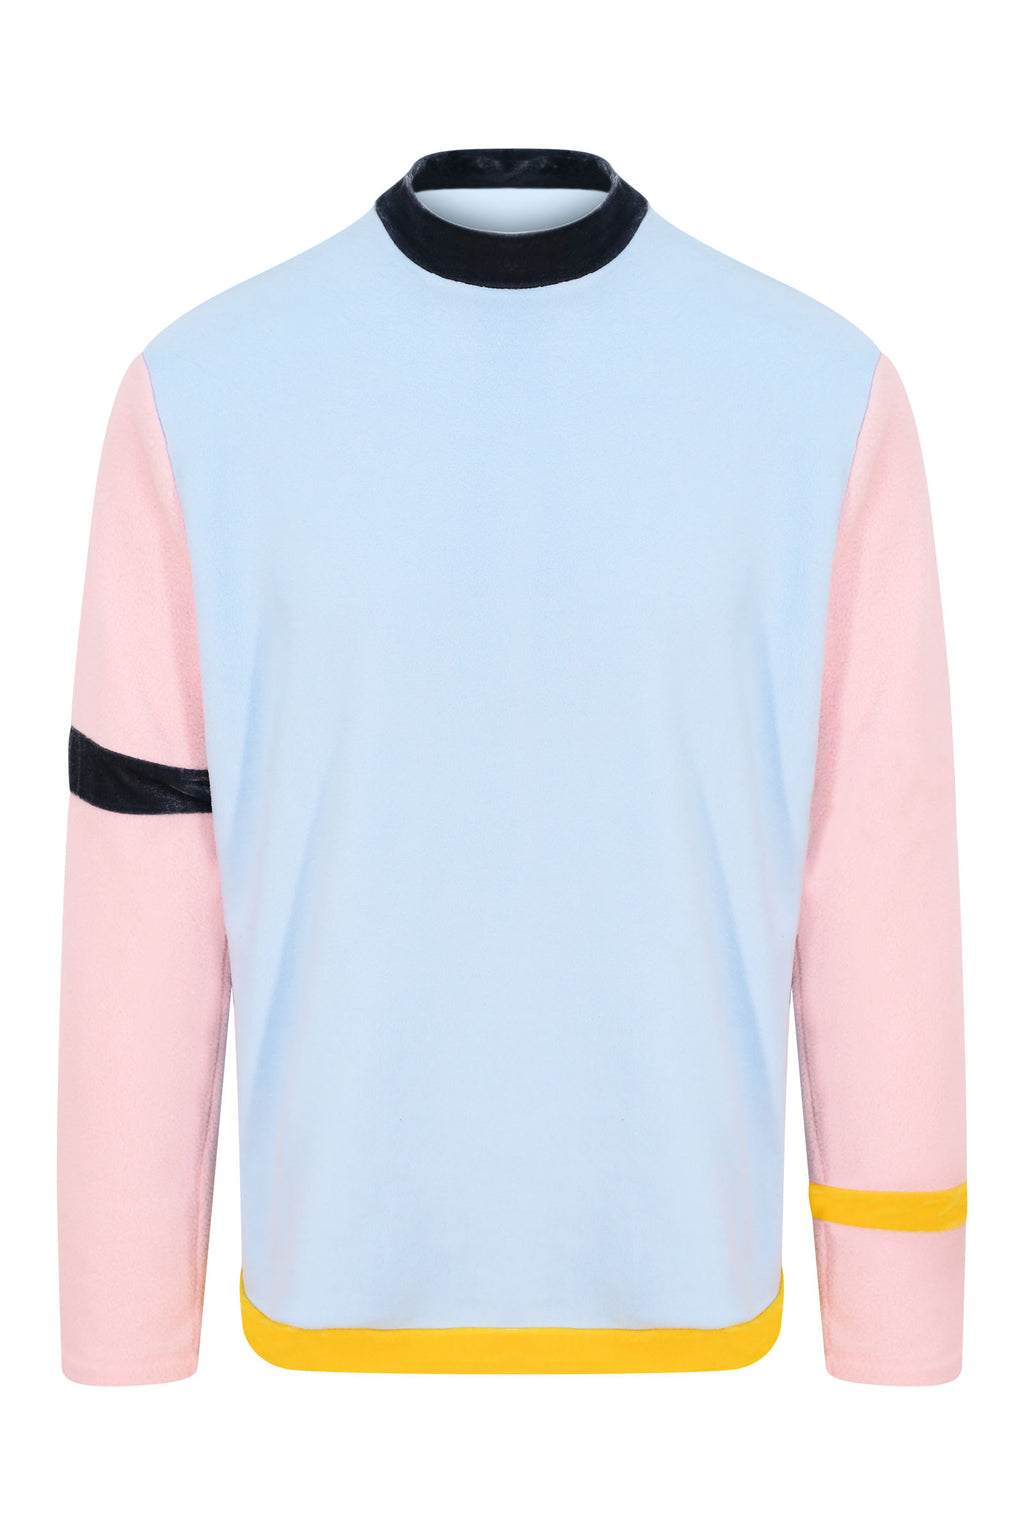 Unisex Blue and Pink Colour Block Fleece